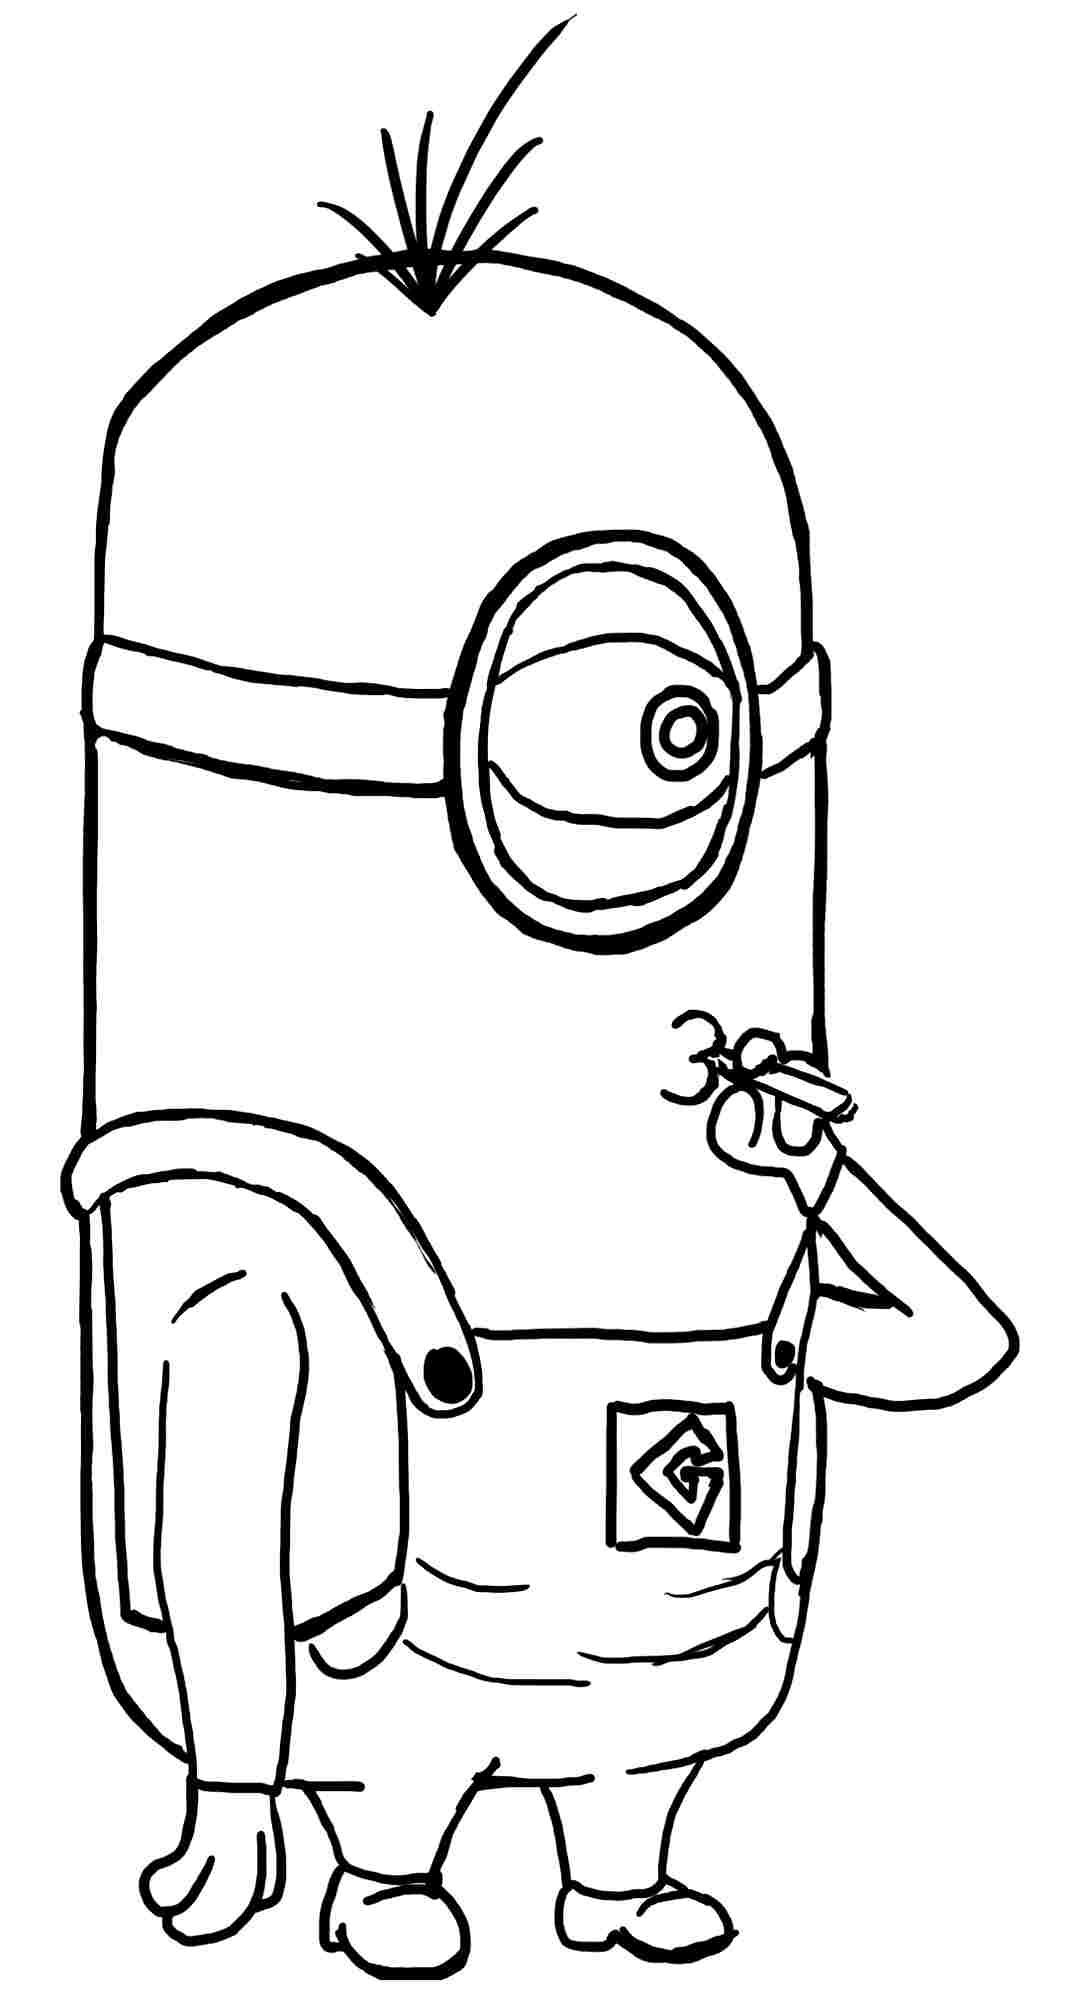 despicable me coloring pictures coloring pages despicable me minion anime movie printable me pictures despicable coloring